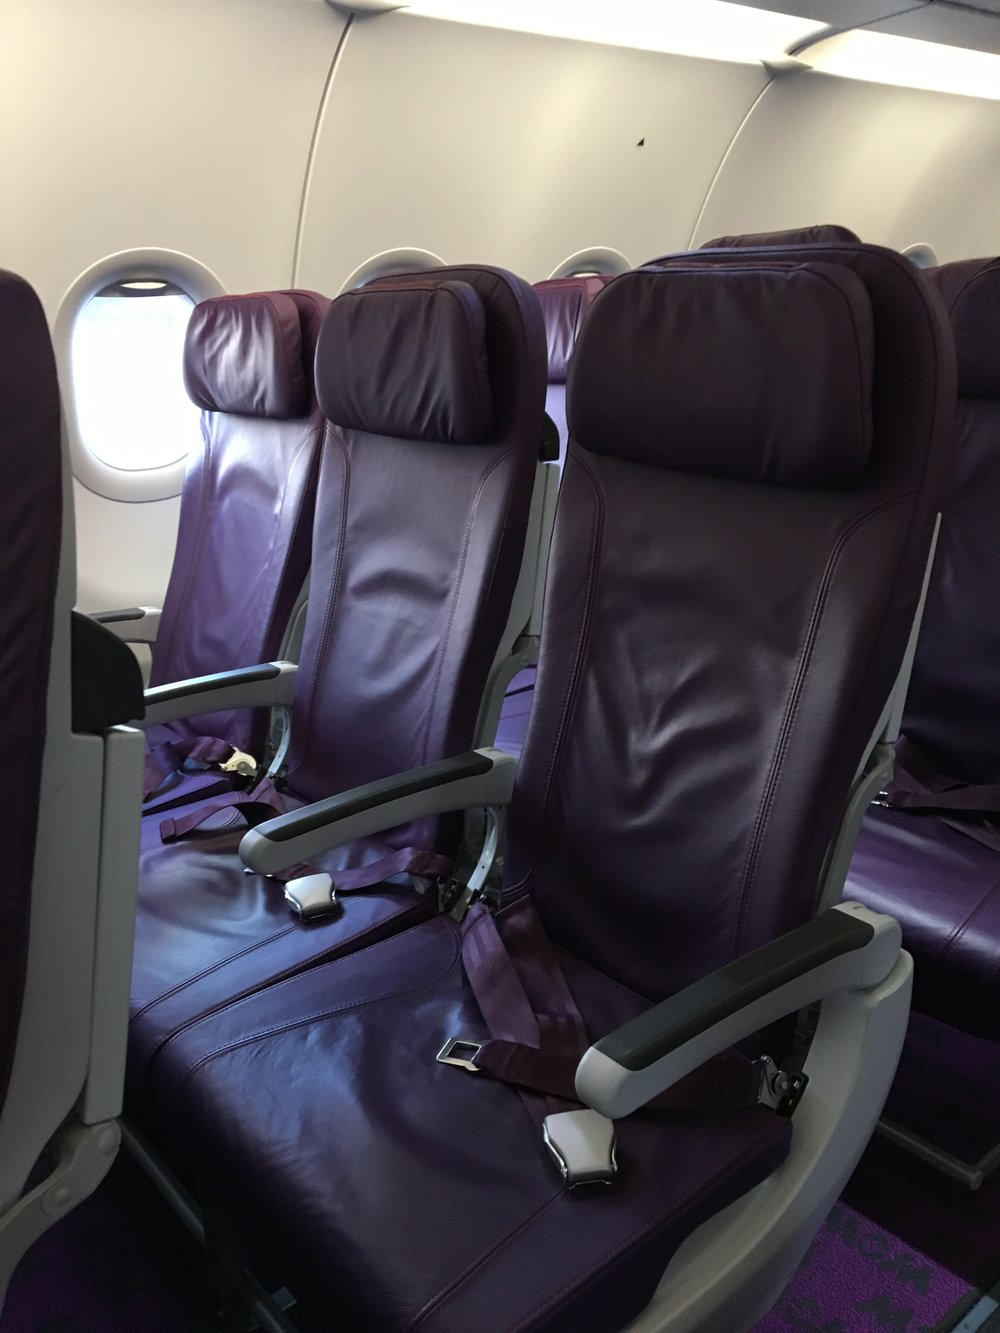 Coach Seats on WOW Air.